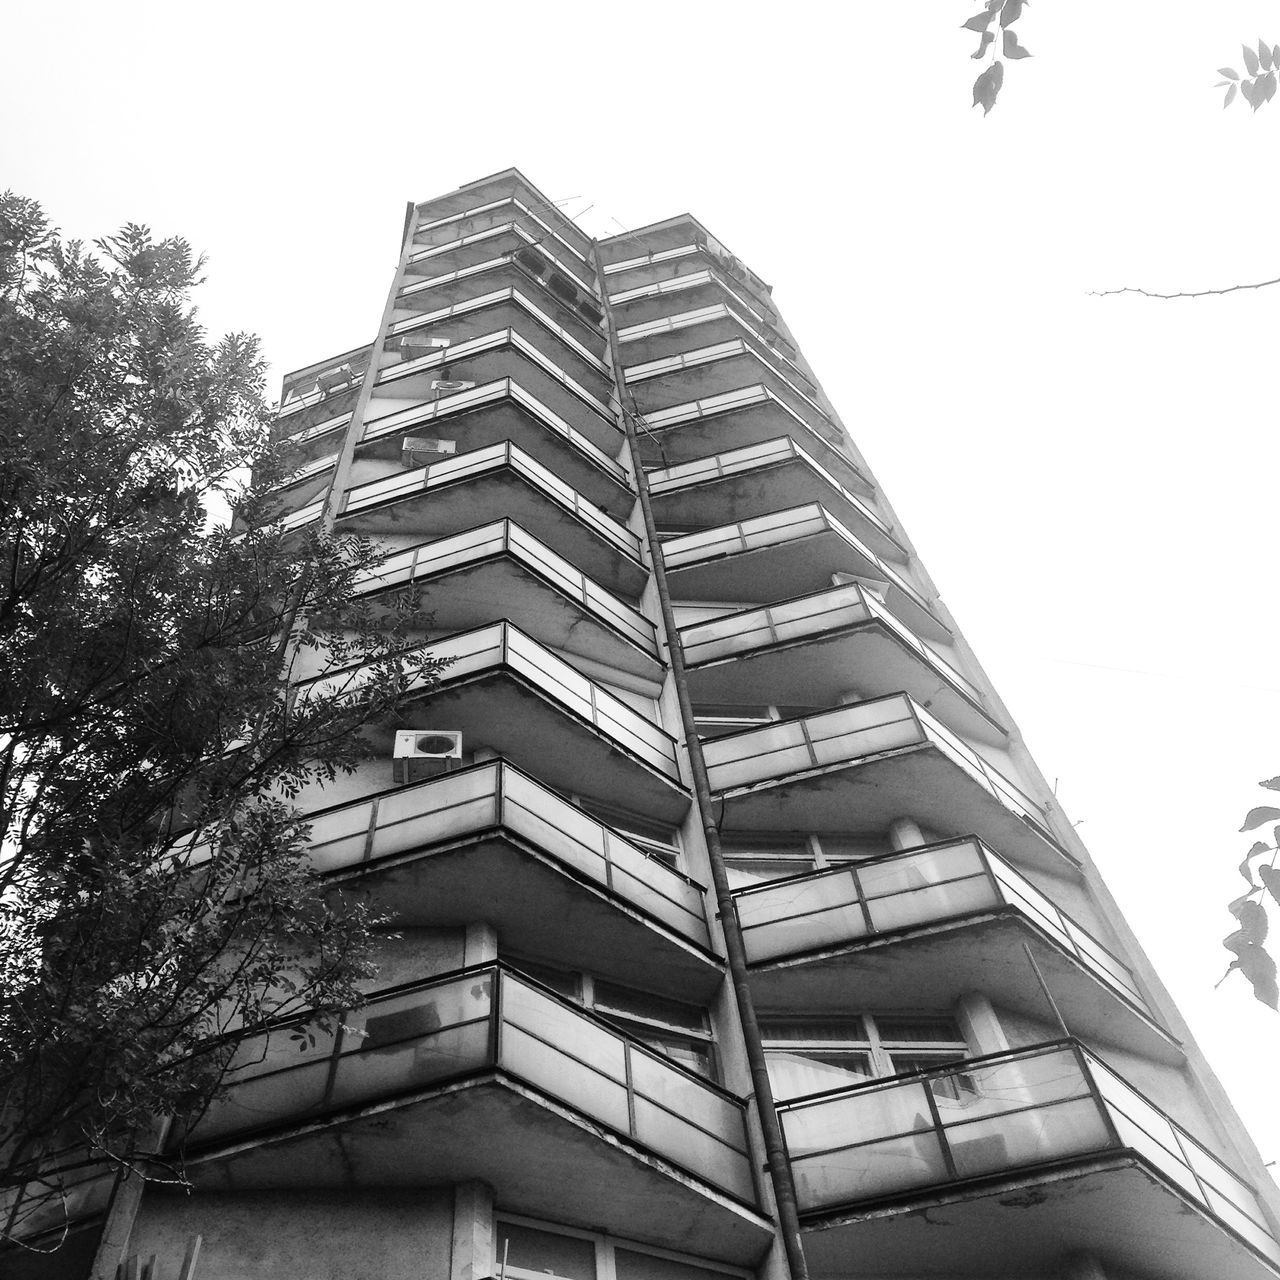 Abstract Architecture Architecture Balcony Belgrade Black & White Black And White Brutalism Building Exterior Built Structure City Clear Sky Concrete Eastern Europe Façade Low Angle View Minimal Modern No People Outdoors Plattenbau Prefabricated Houses Serbia Skyscraper Tristesse